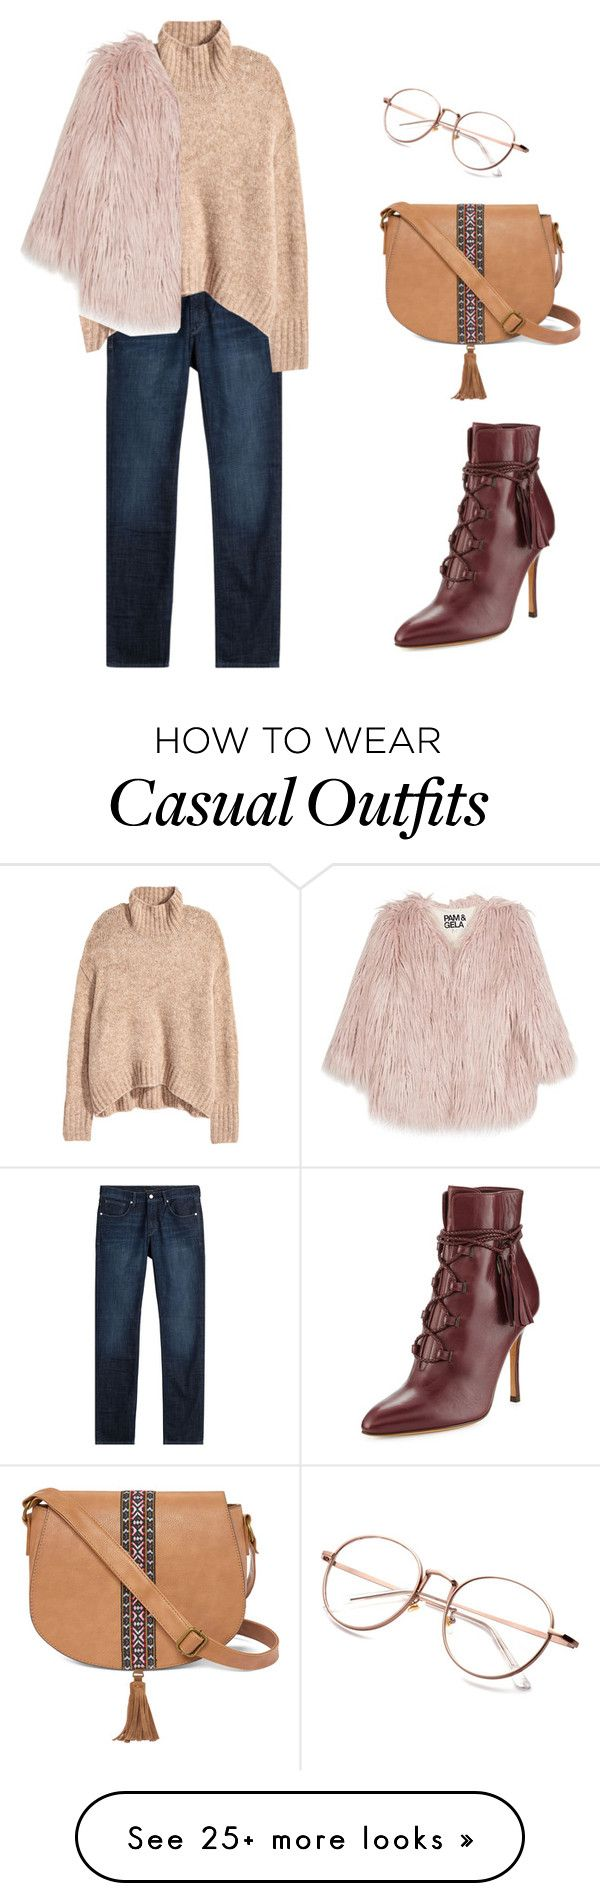 """casual elegance"" by candynena228 on Polyvore featuring Baldessarini, Valentino, Pam & Gela and T-shirt & Jeans"